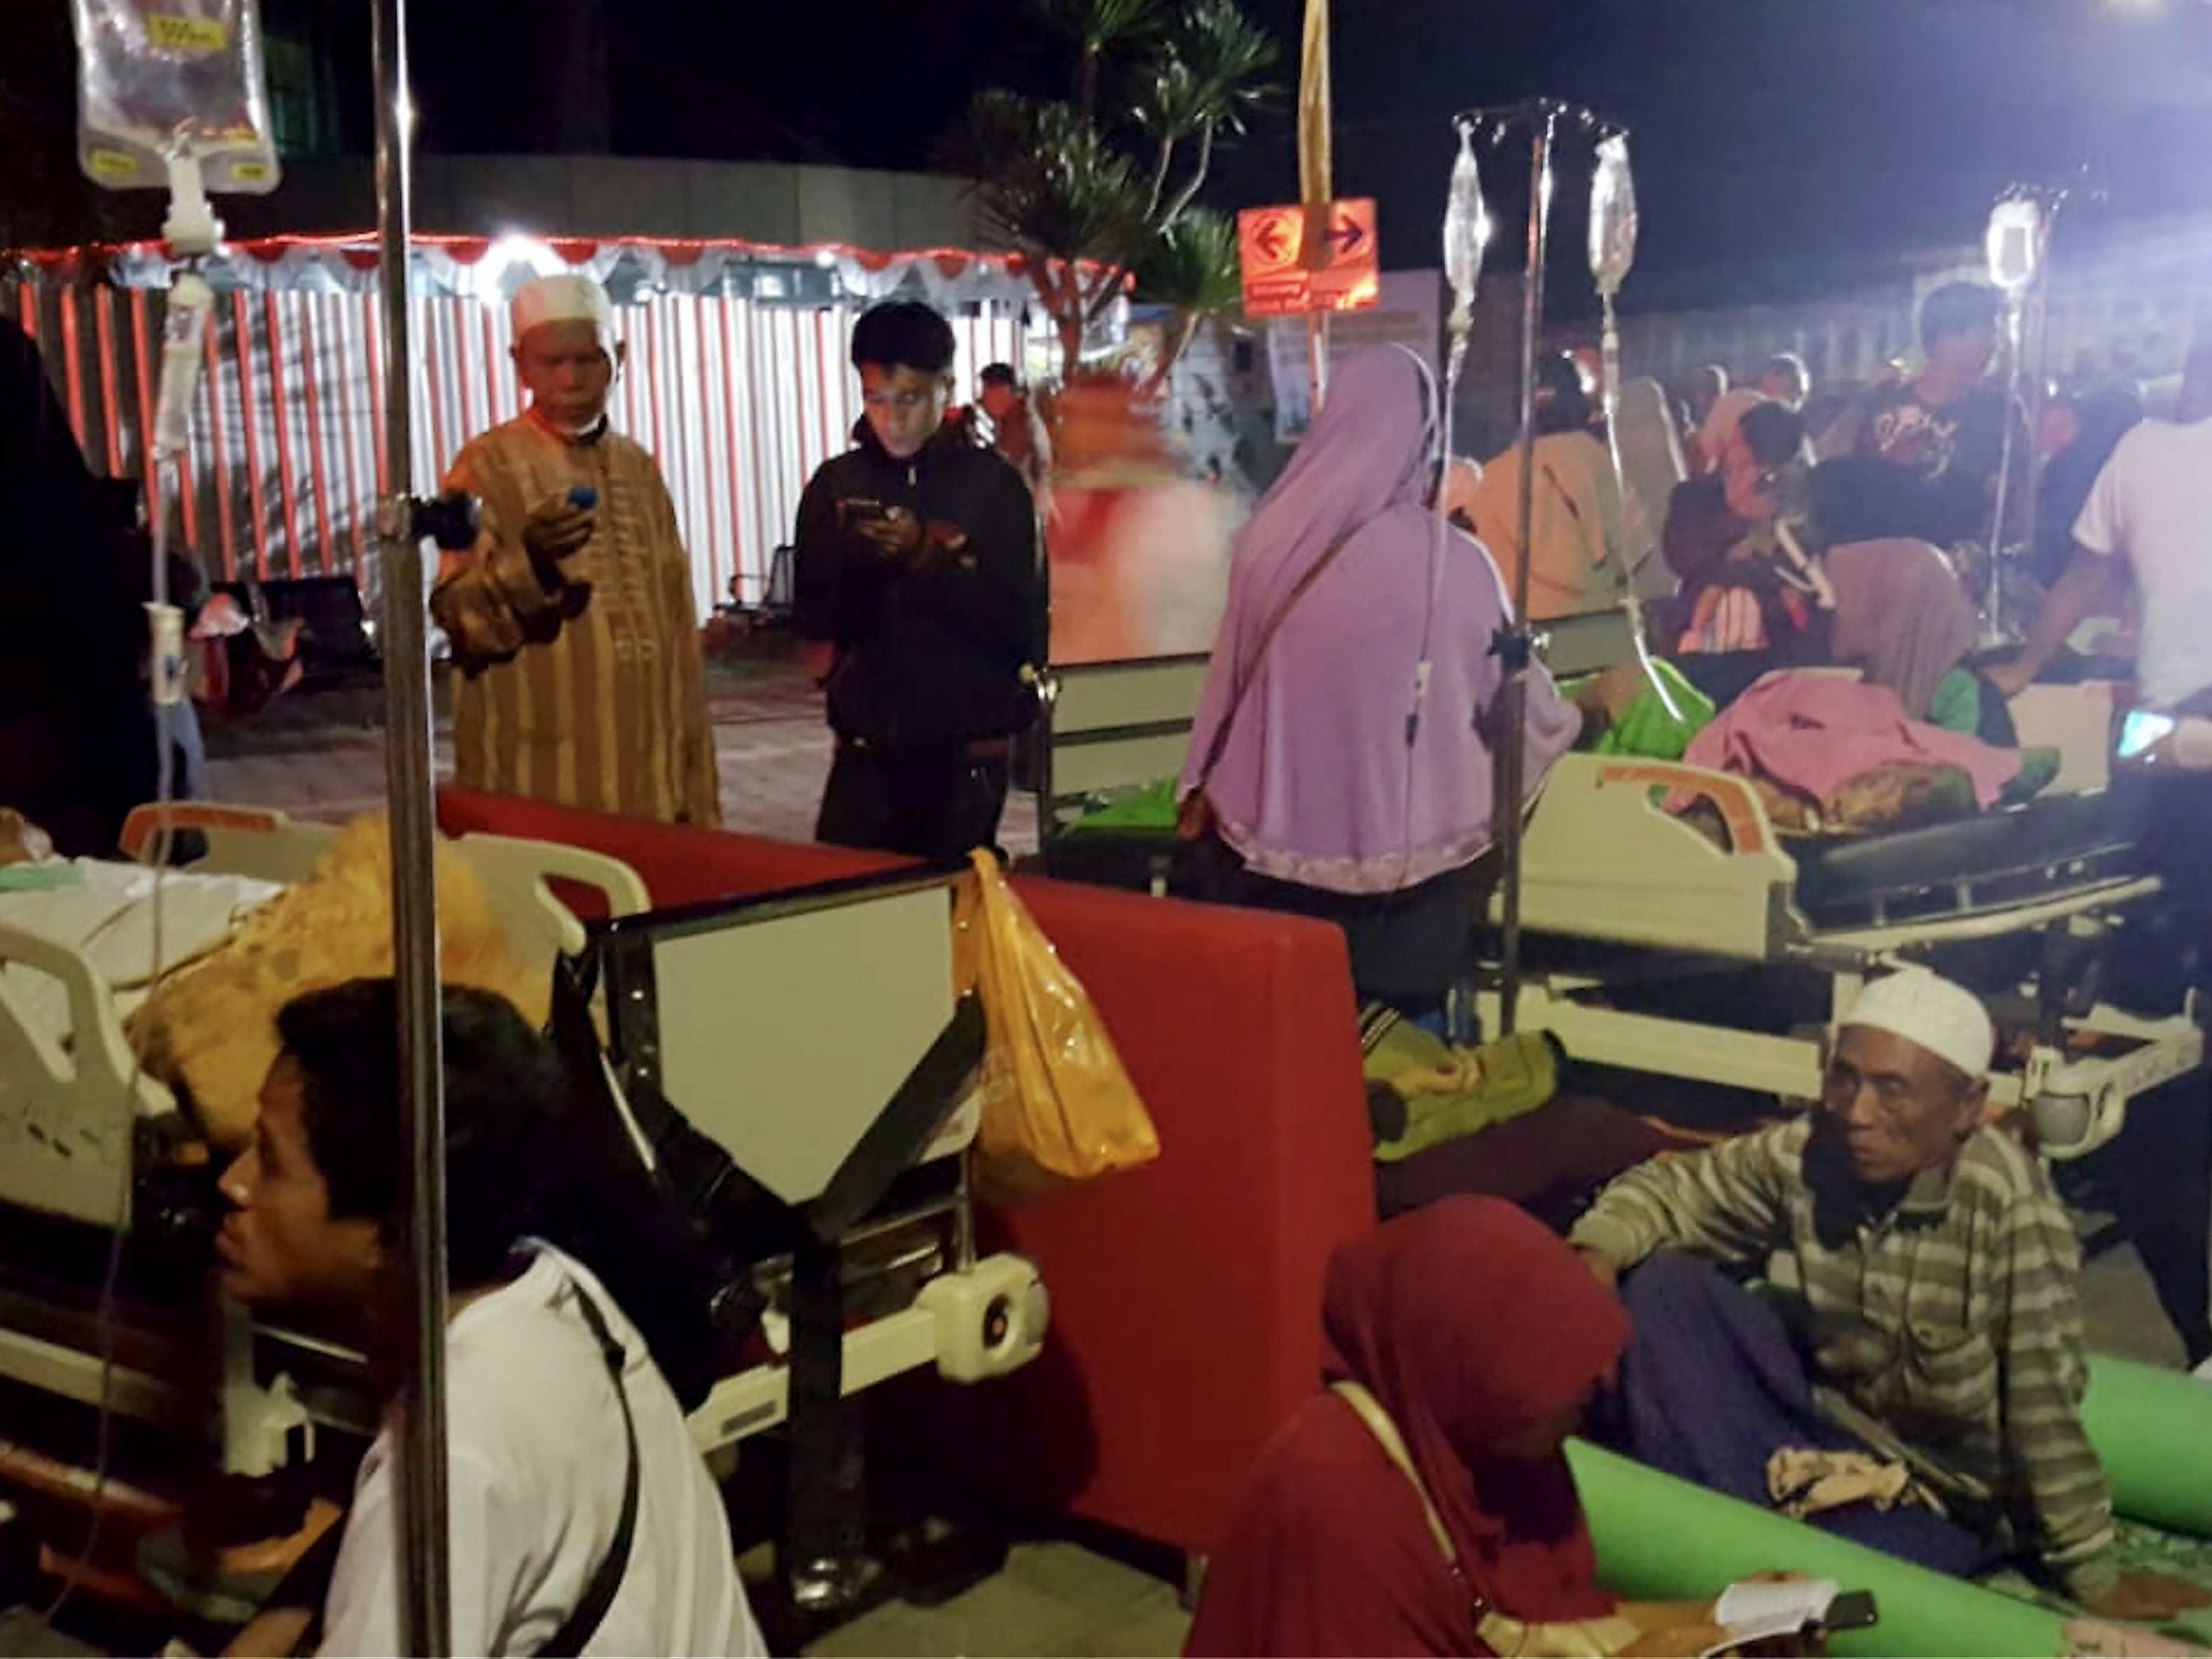 Hospital patients and relatives wait outside after being evacuated after an earthquake rocked Indonesia's Lombok island, in Mataram on Aug. 5, 2018.